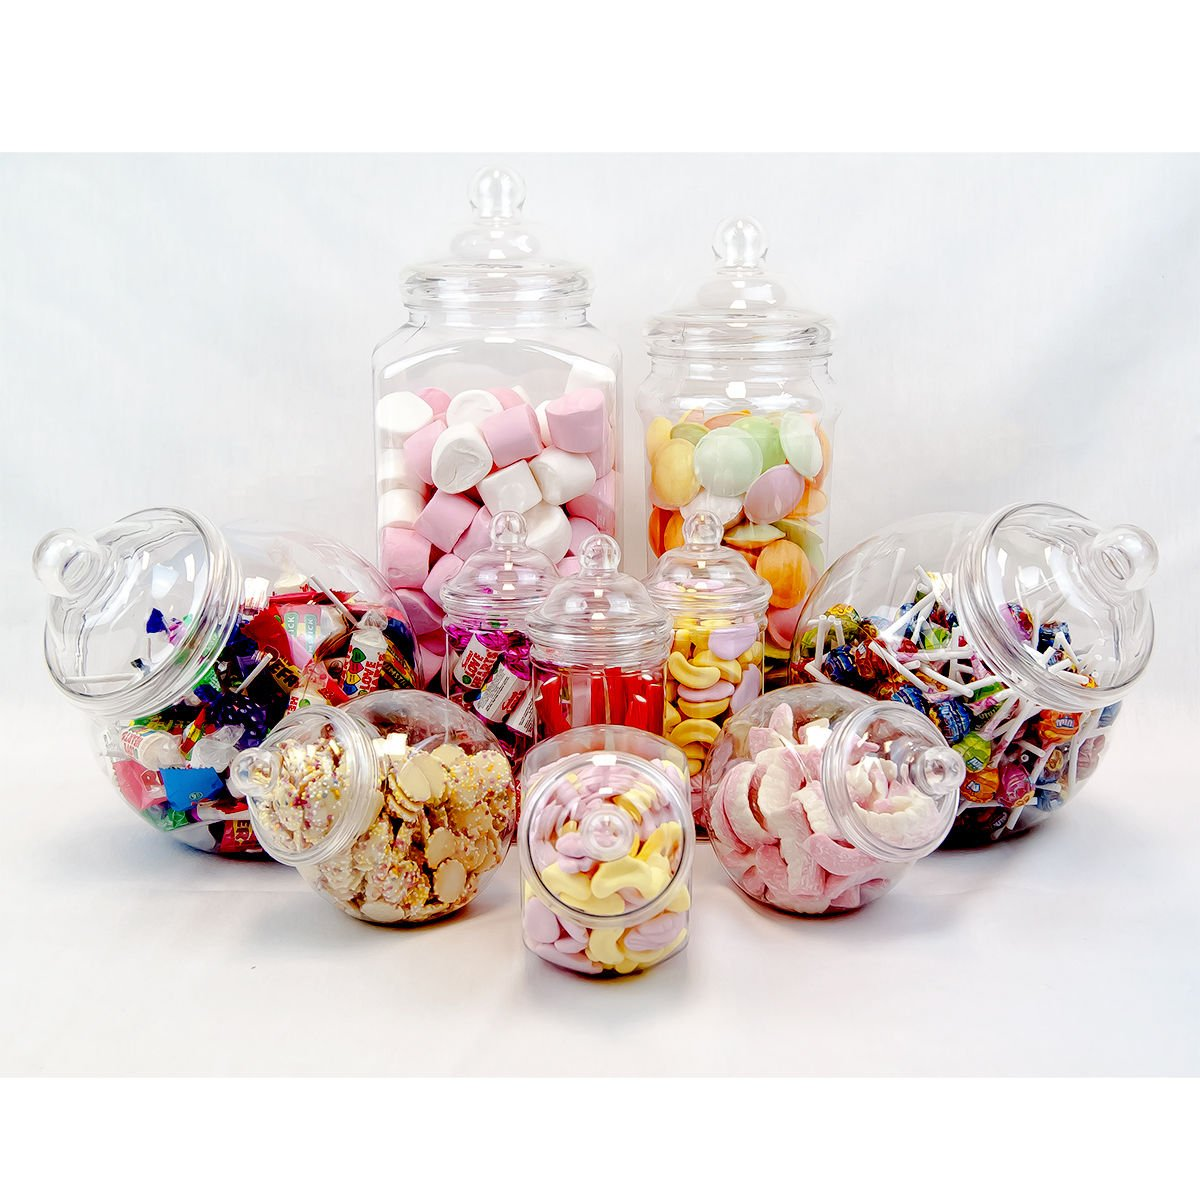 Amazon 10 pc candy buffet set plastic candy jars candy amazon 10 pc candy buffet set plastic candy jars candy containers sweets jars for wedding or kids party toys games reviewsmspy